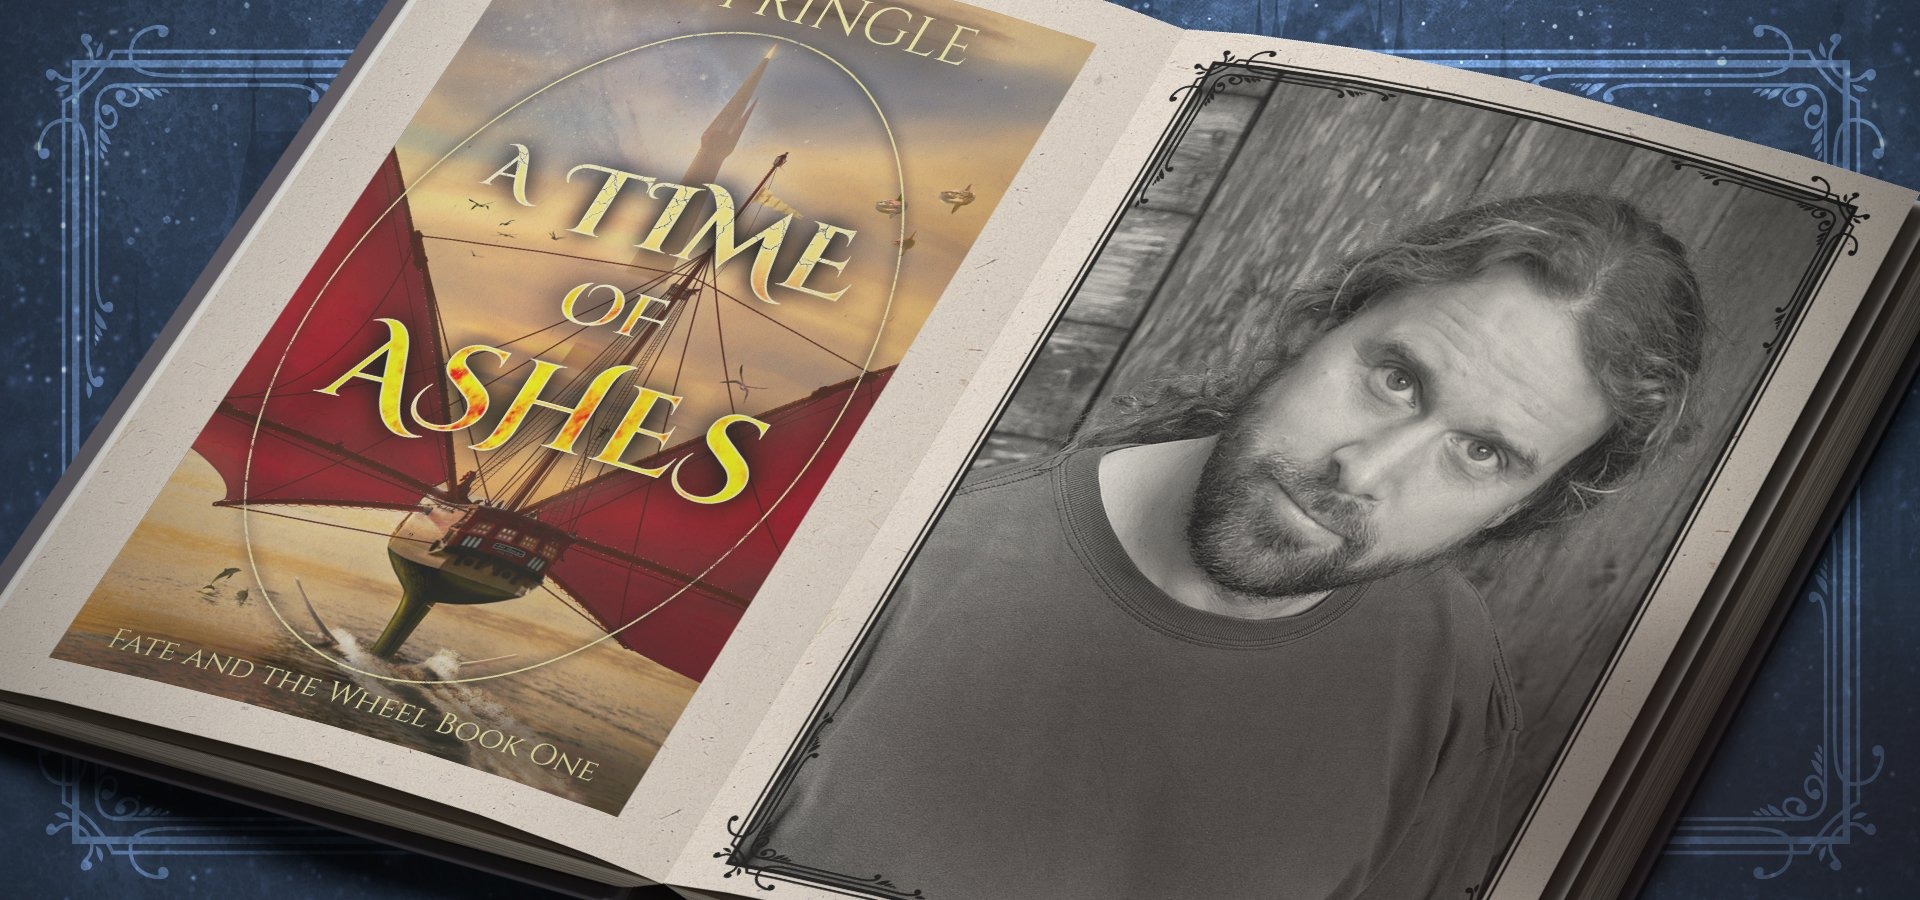 A Time of Ashes by Ru Pringle